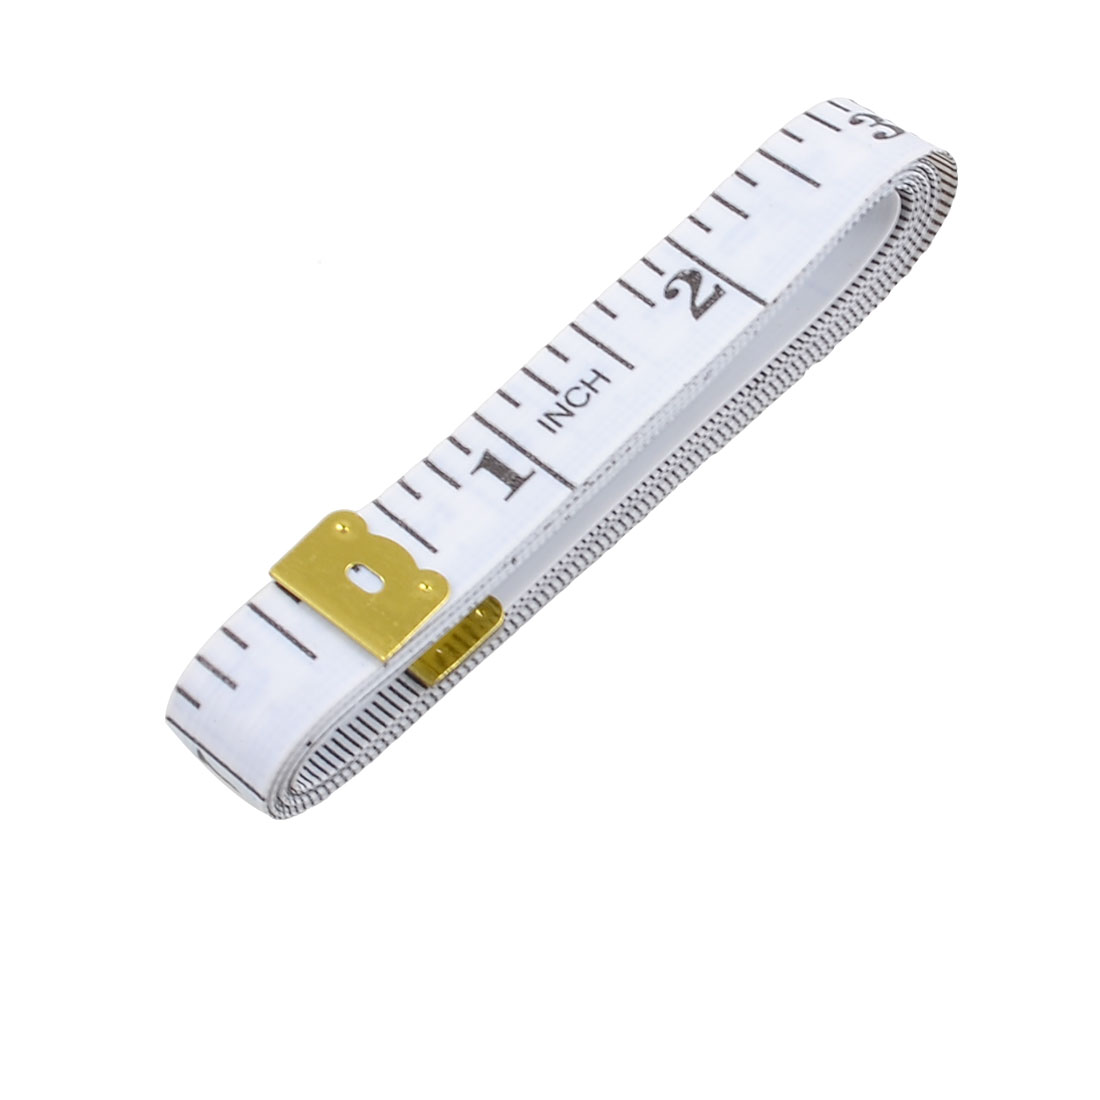 60Inch/150cm Flexible Tailor Cloth Height Measuring Ruler Tape White Black 5 Pcs